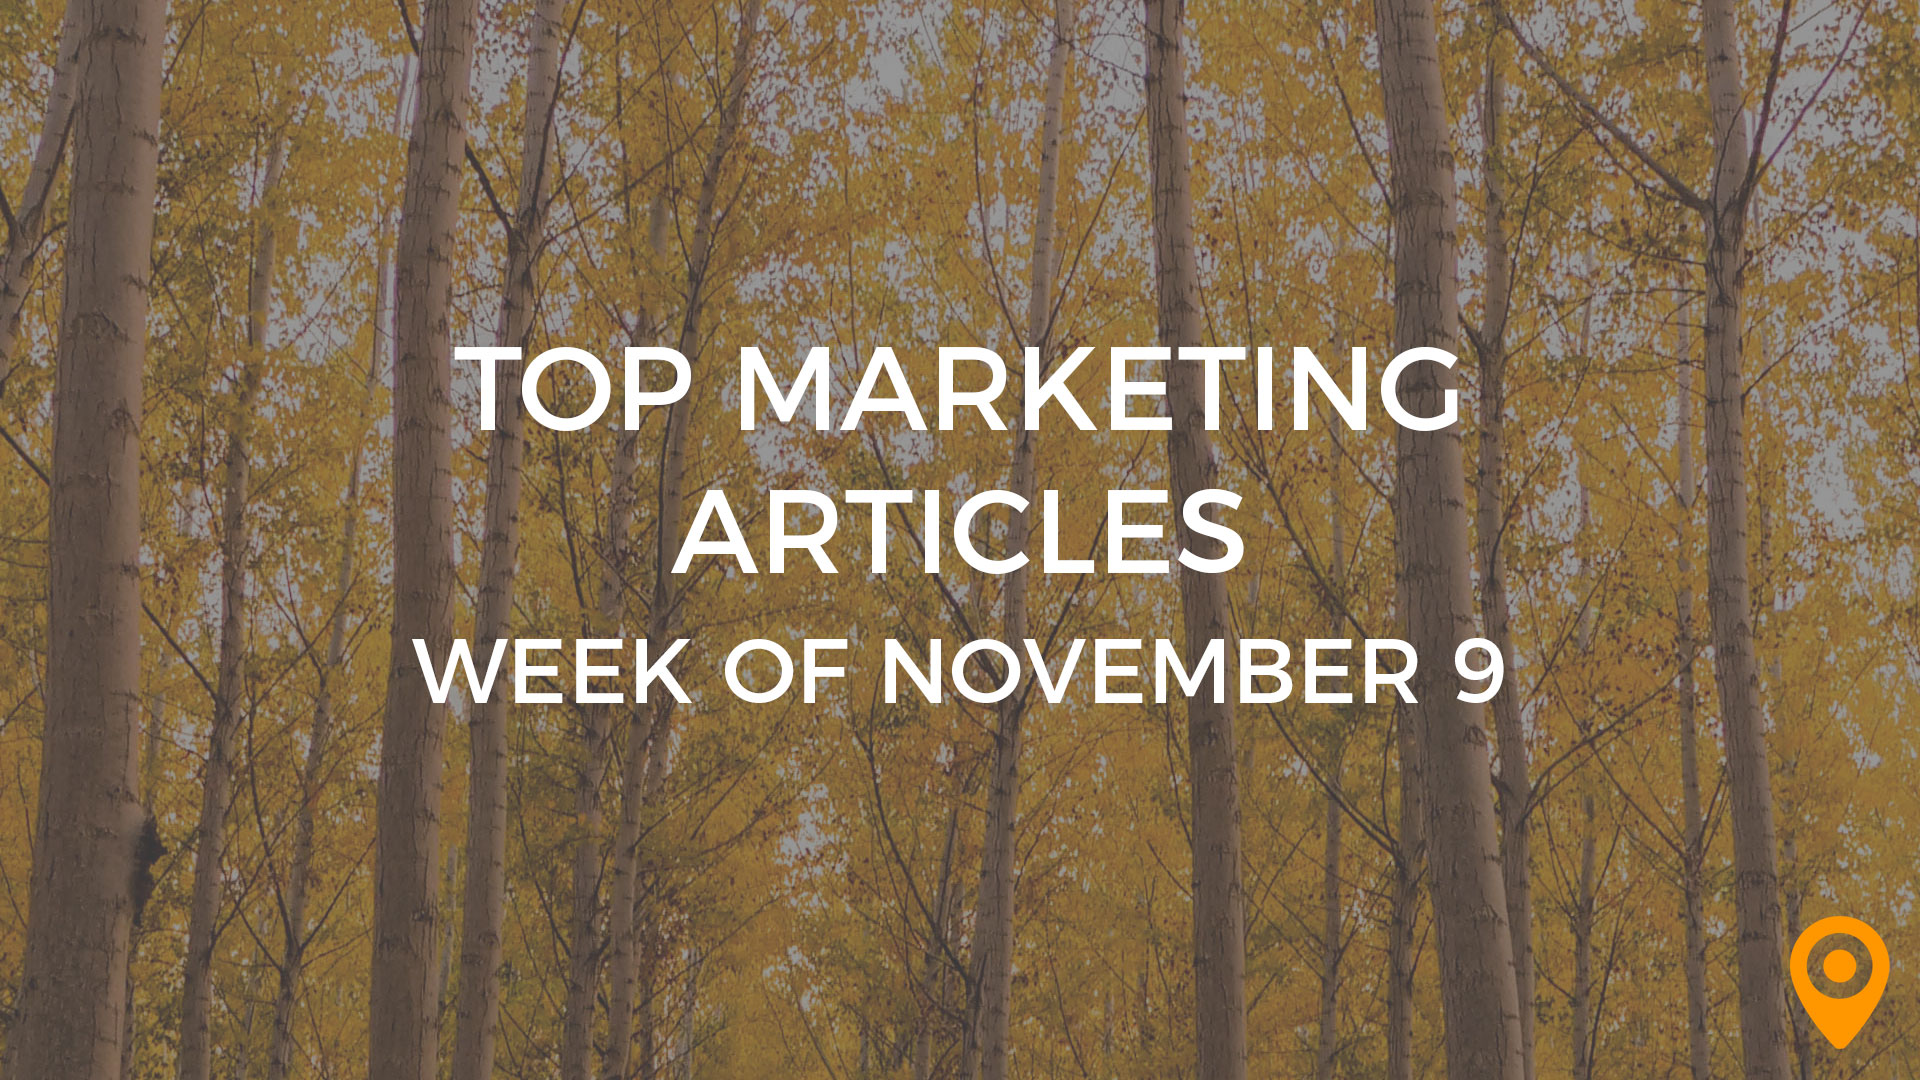 Top Marketing Articles Week of Nov 9